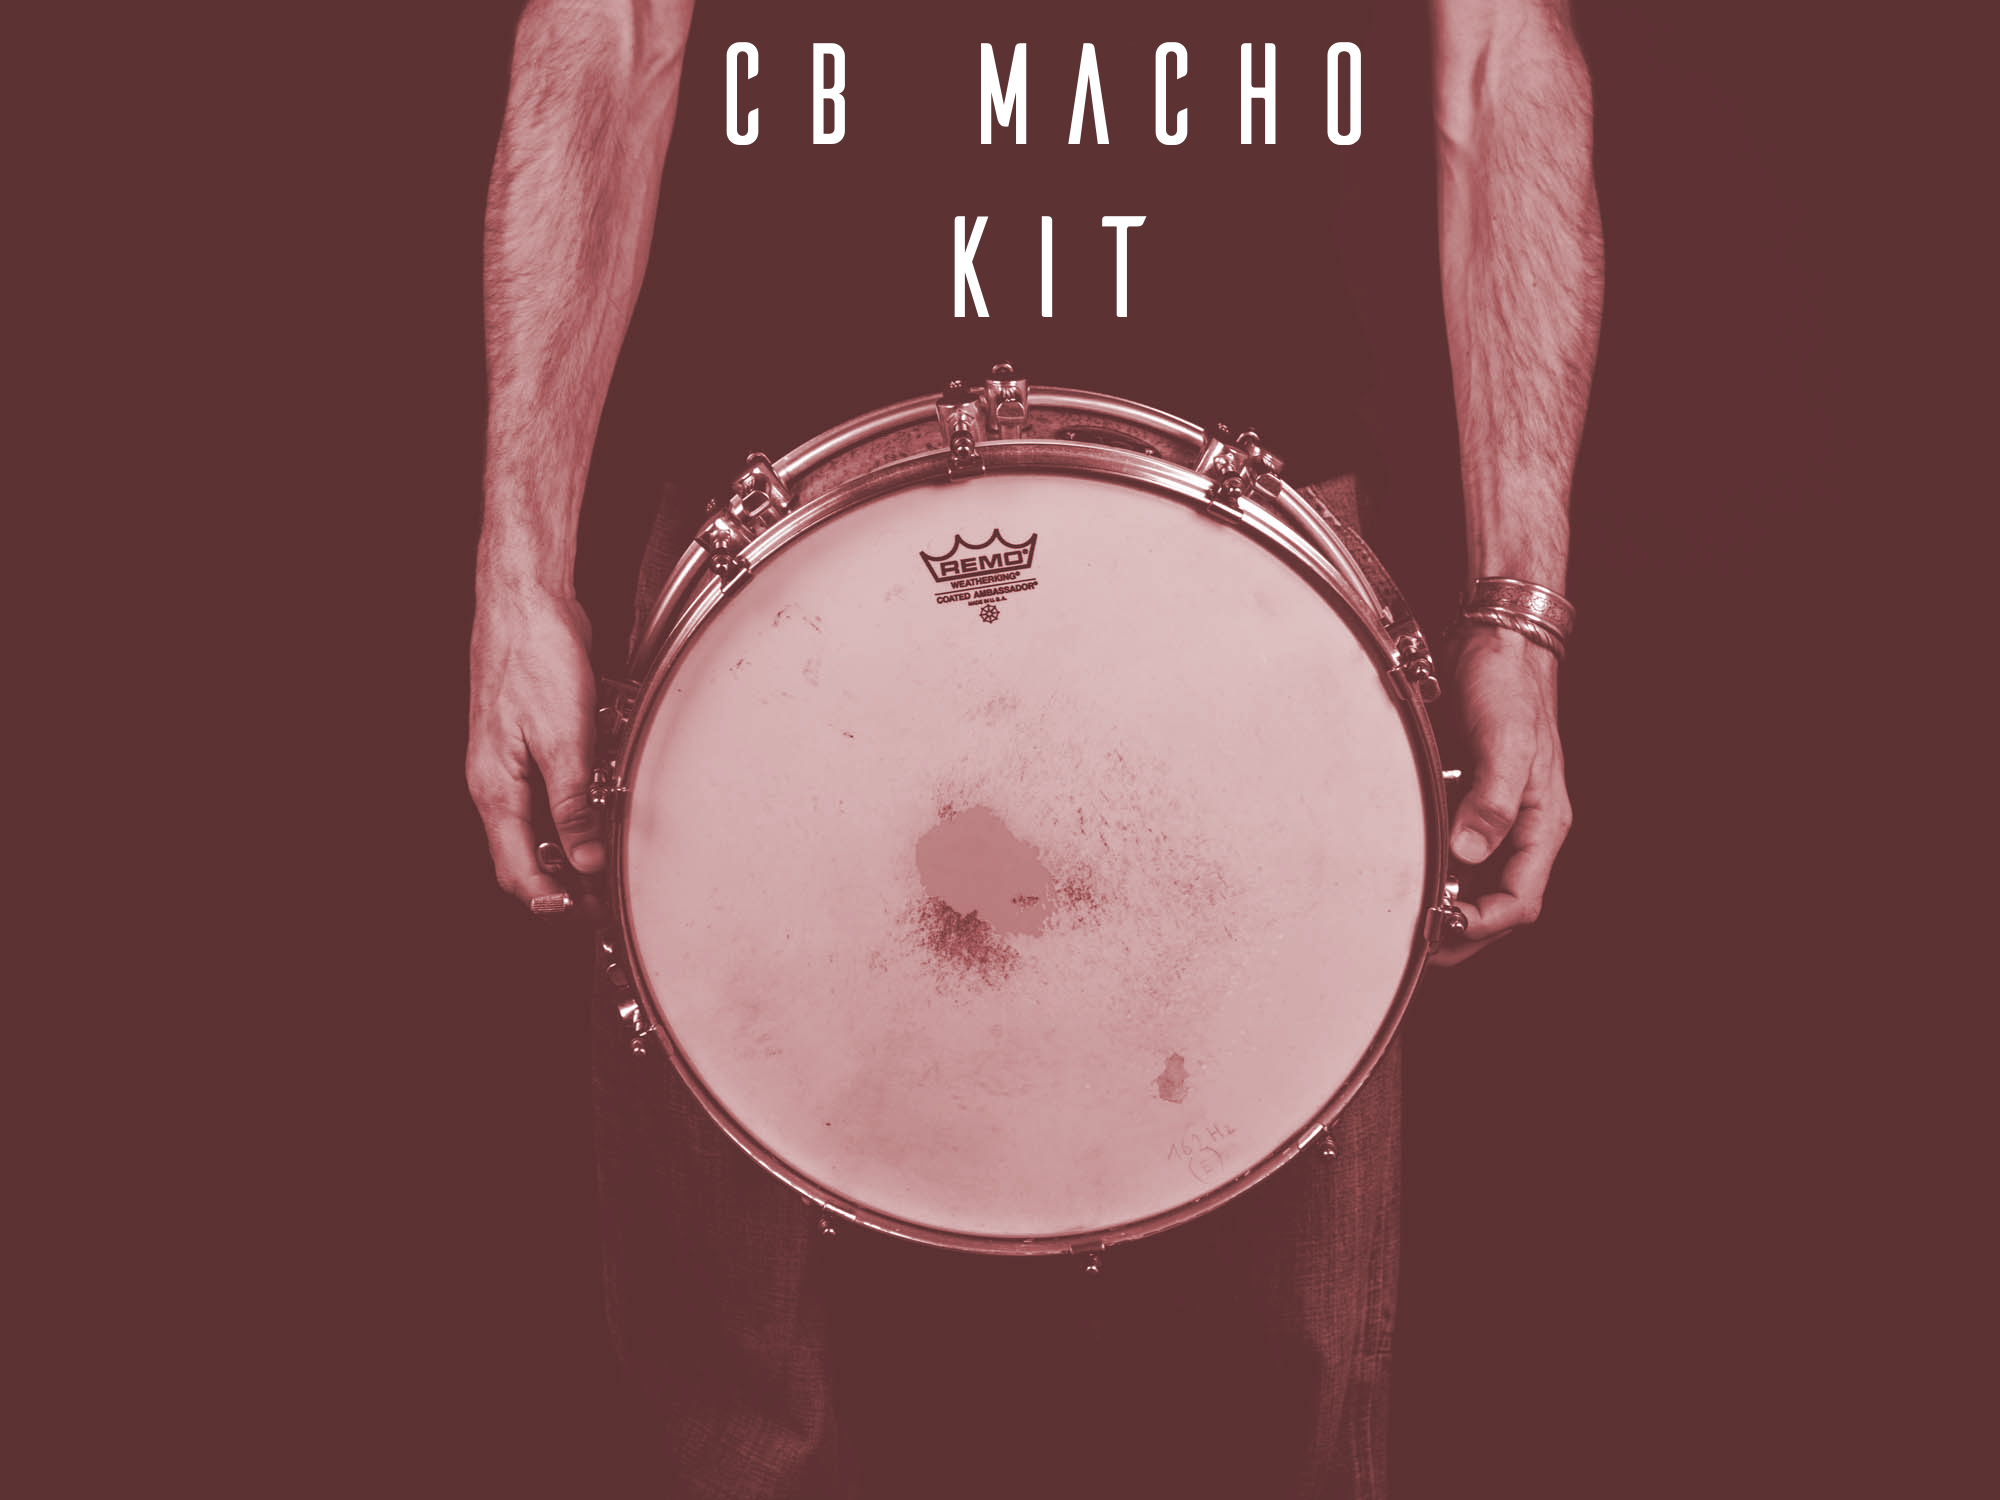 C.B MACHO KIT